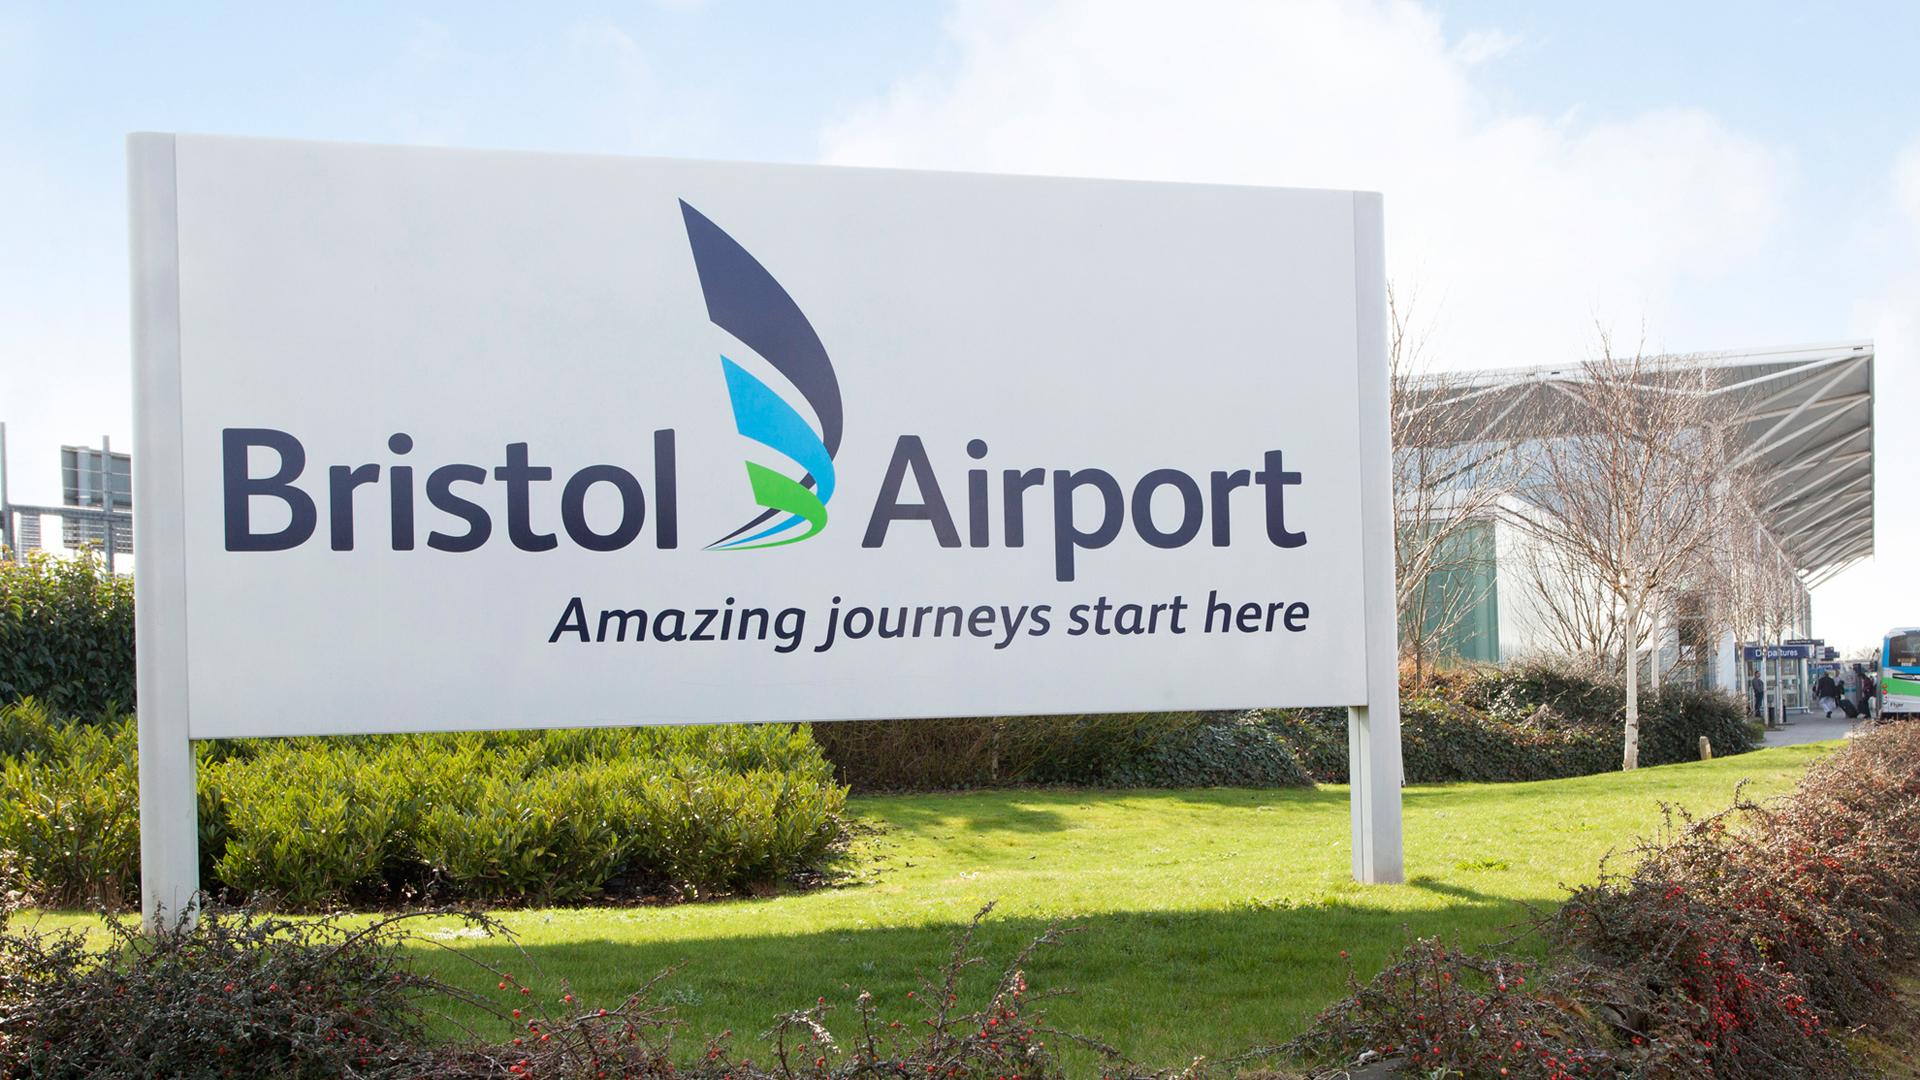 Bristol Airport looks to the future